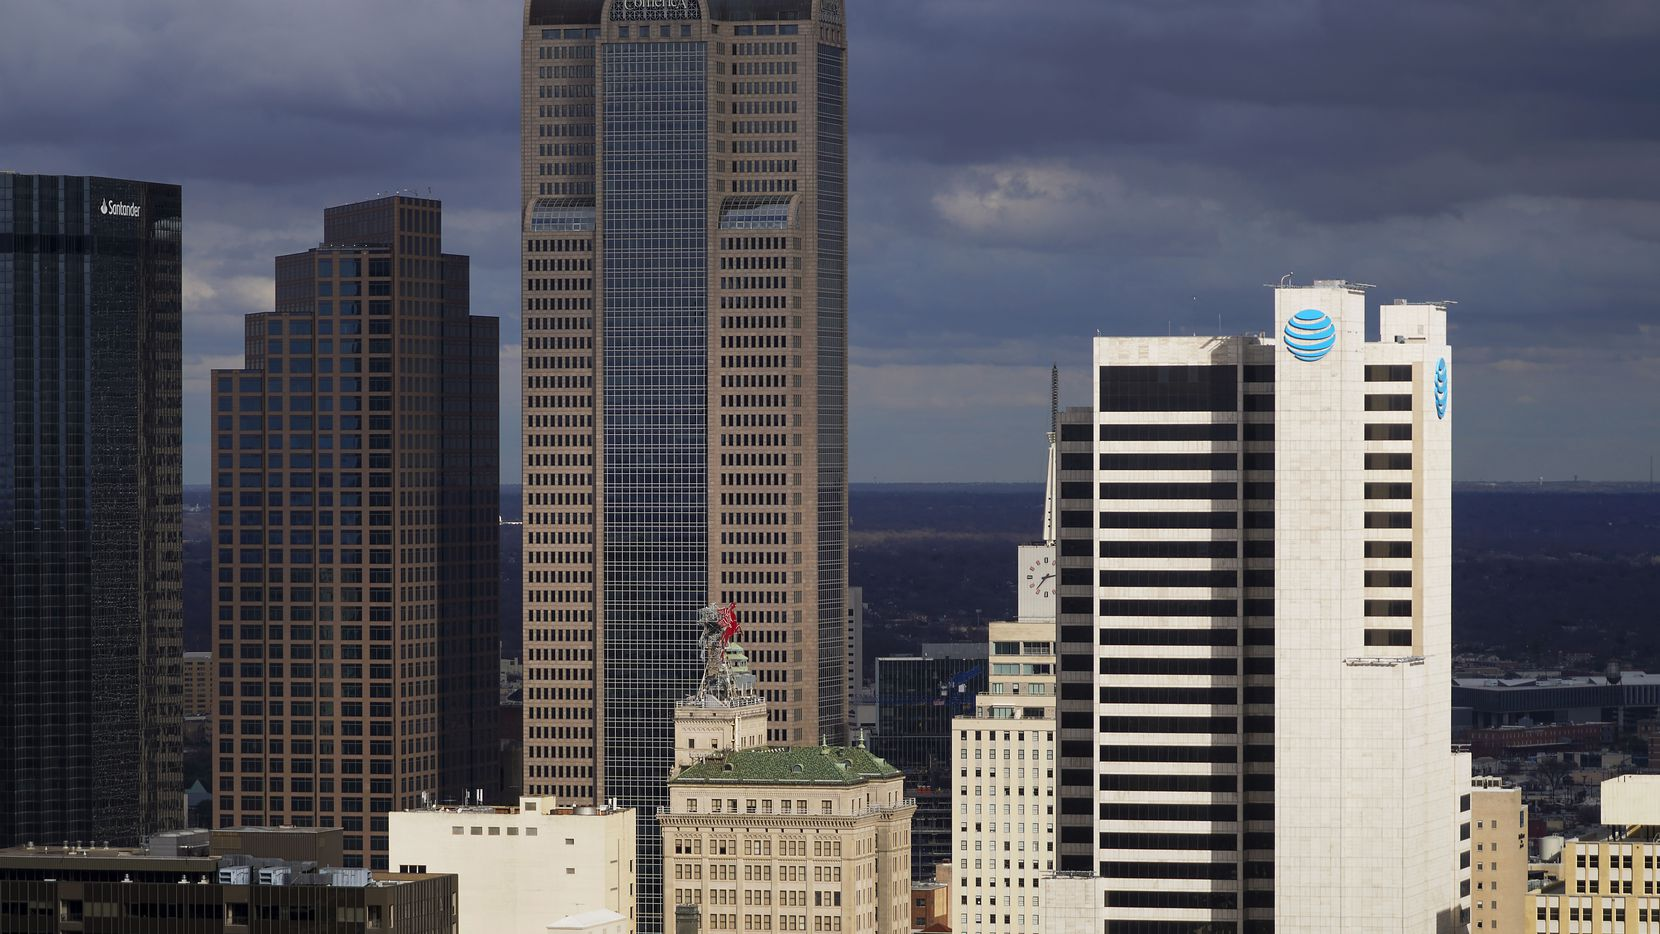 Comerica Bank Tower (left center) and AT&T headquarters building Whitacre Tower (right) as seen from the roof of Reunion Tower on Tuesday, Dec. 29, 2020, in Dallas. (Smiley N. Pool/The Dallas Morning News)